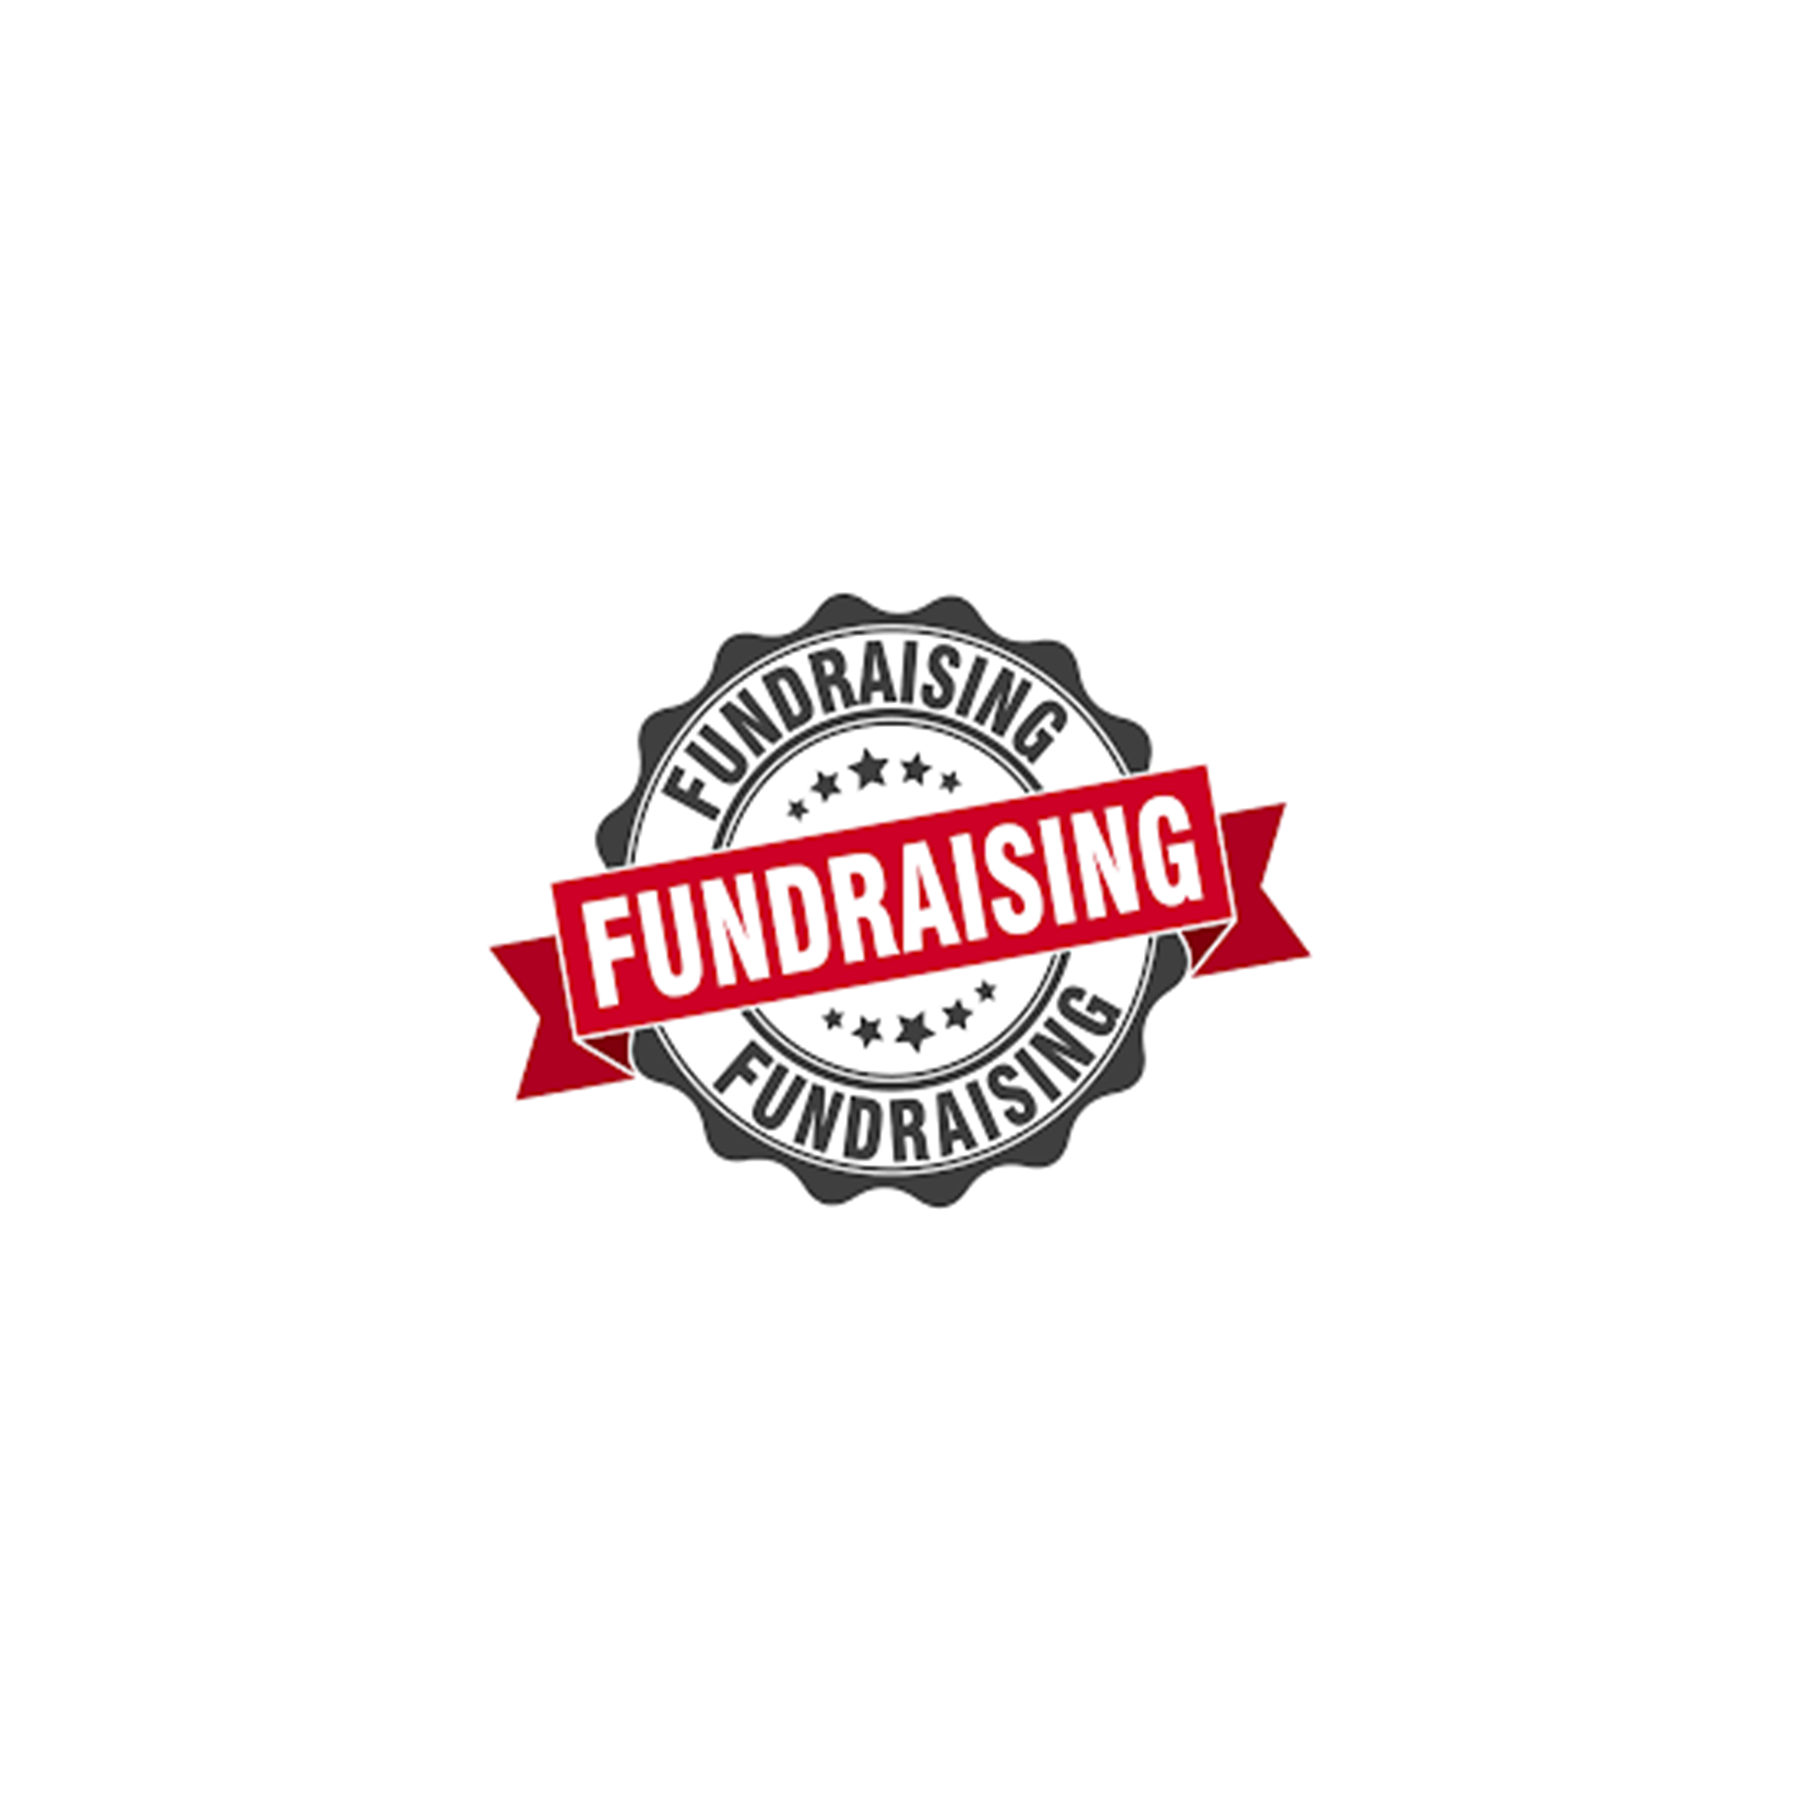 FUNDRAISING - Need to raise capital for your organization or special occasions like school pride, political events, sport leagues, then you are in the right place. We offer online fundraising platforms.